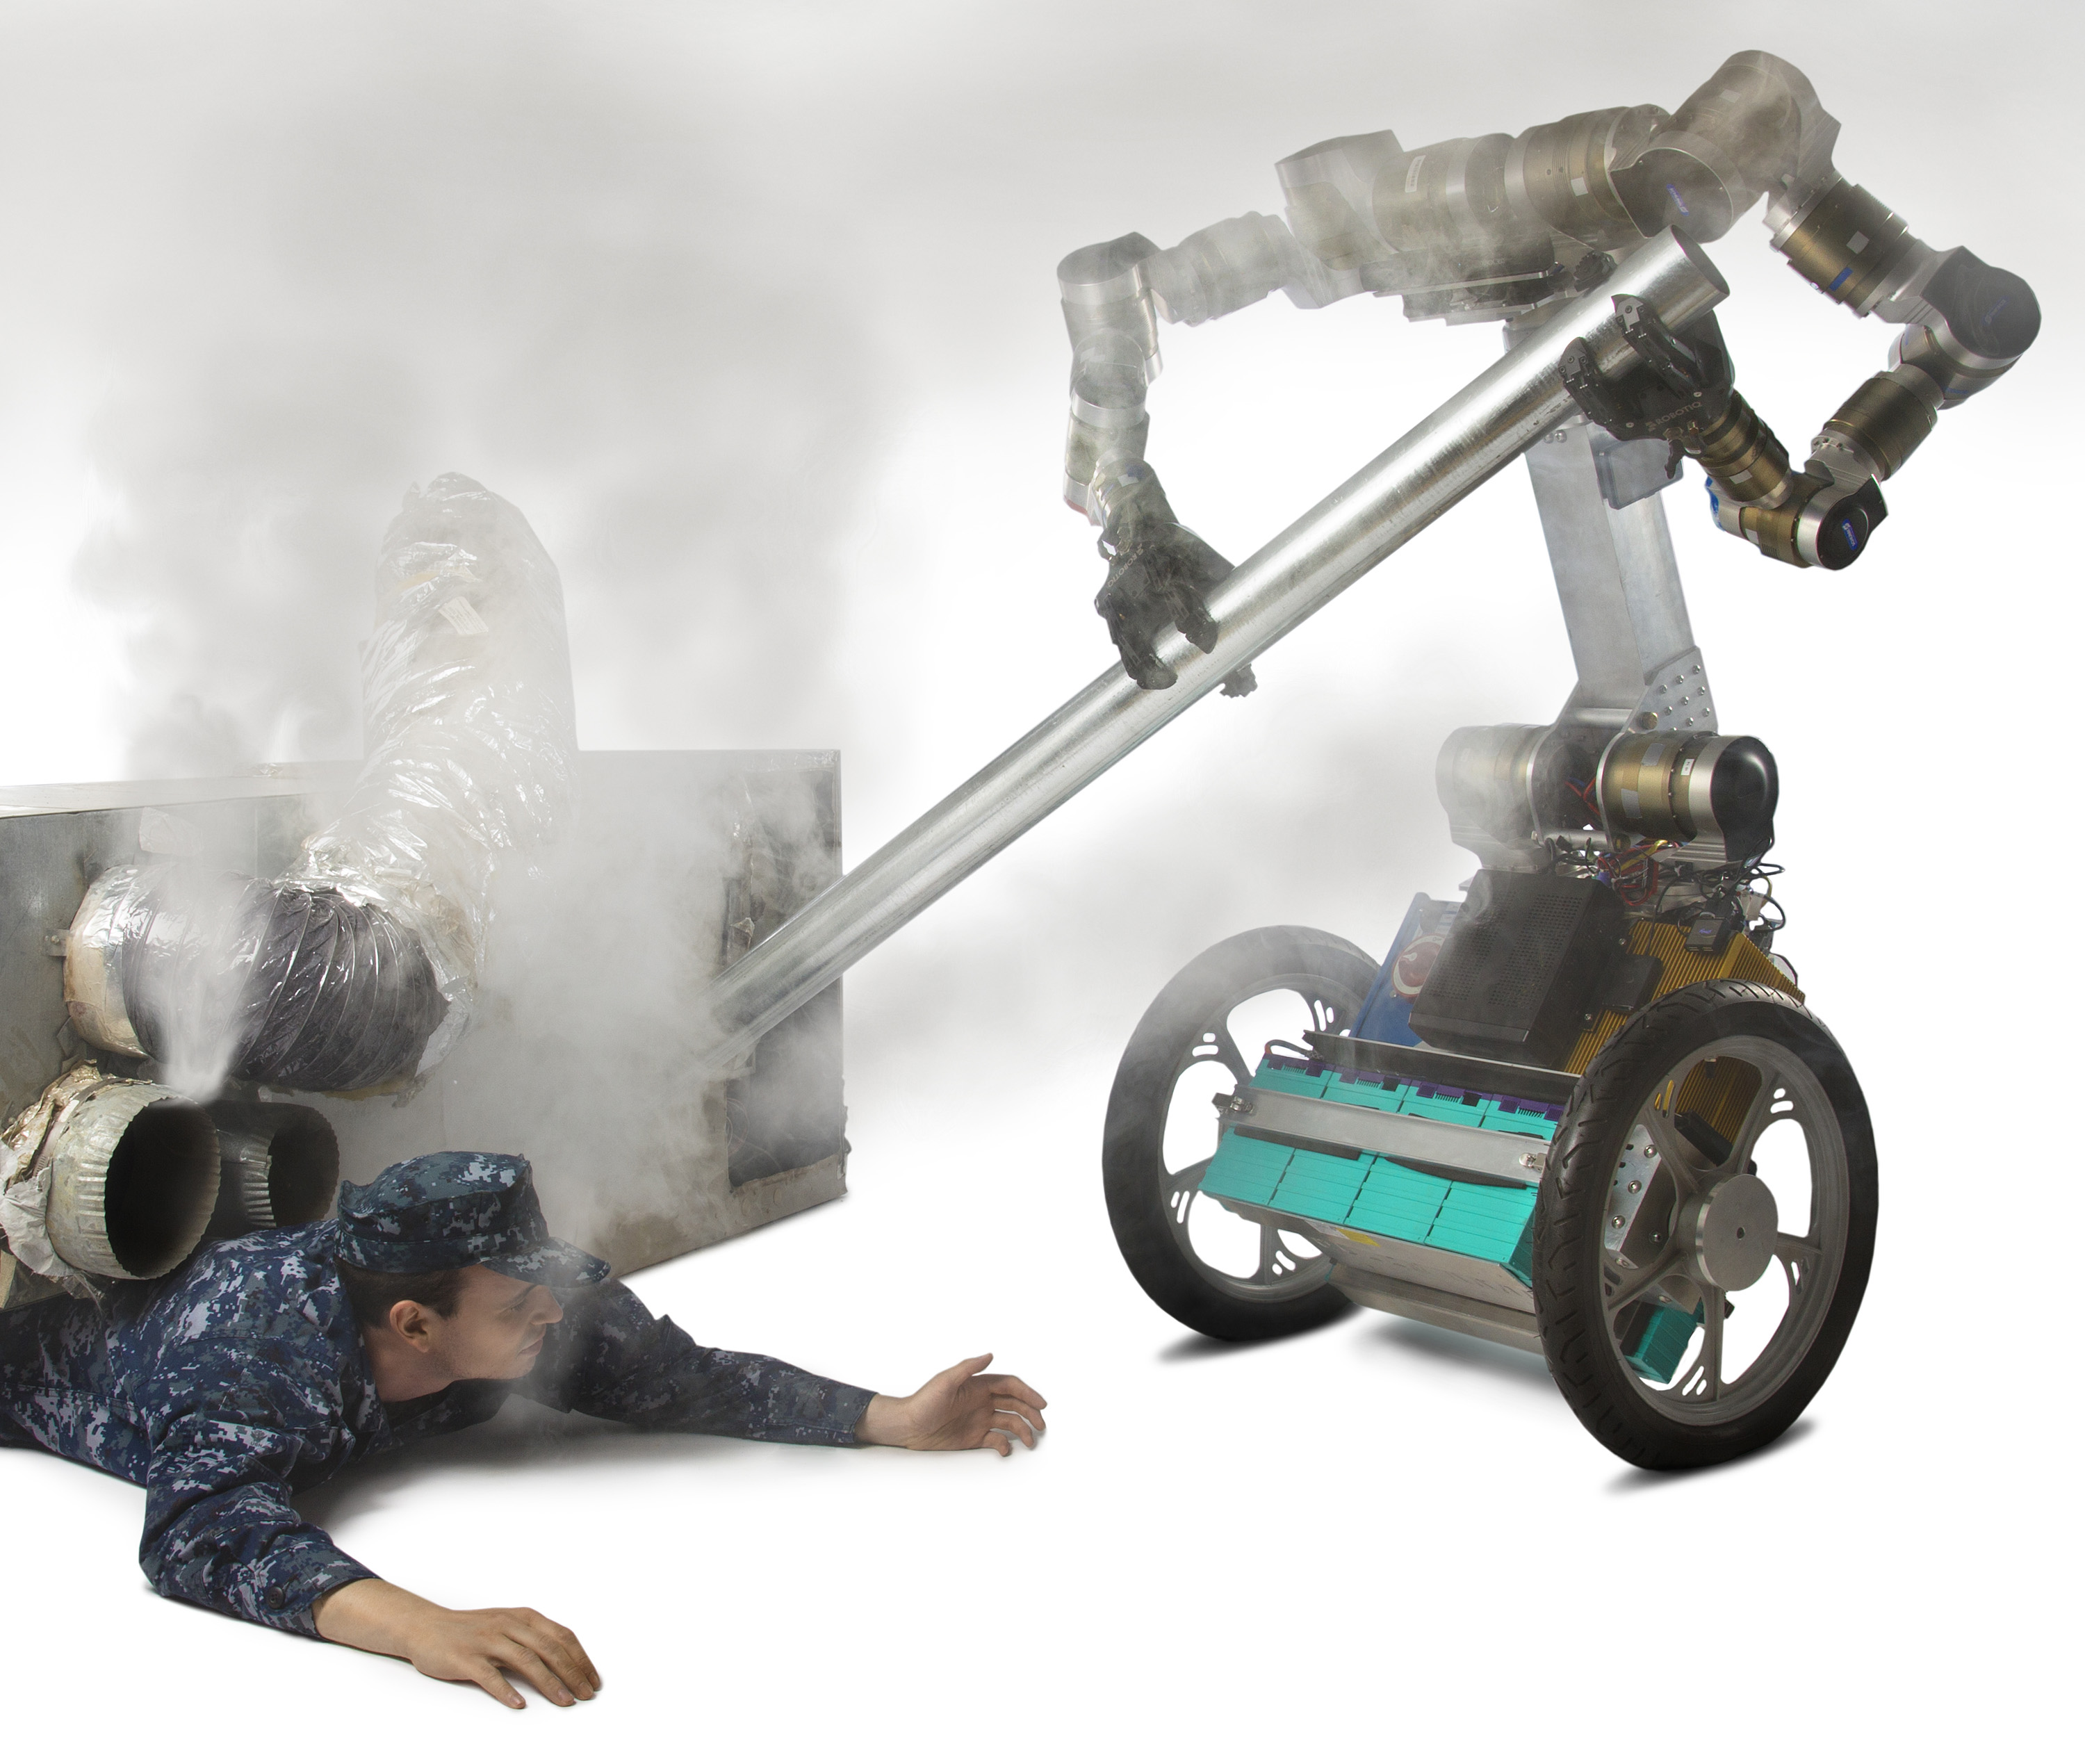 Georgia Tech's MacGyver Bot Will Use Found Objects to Solve Problems